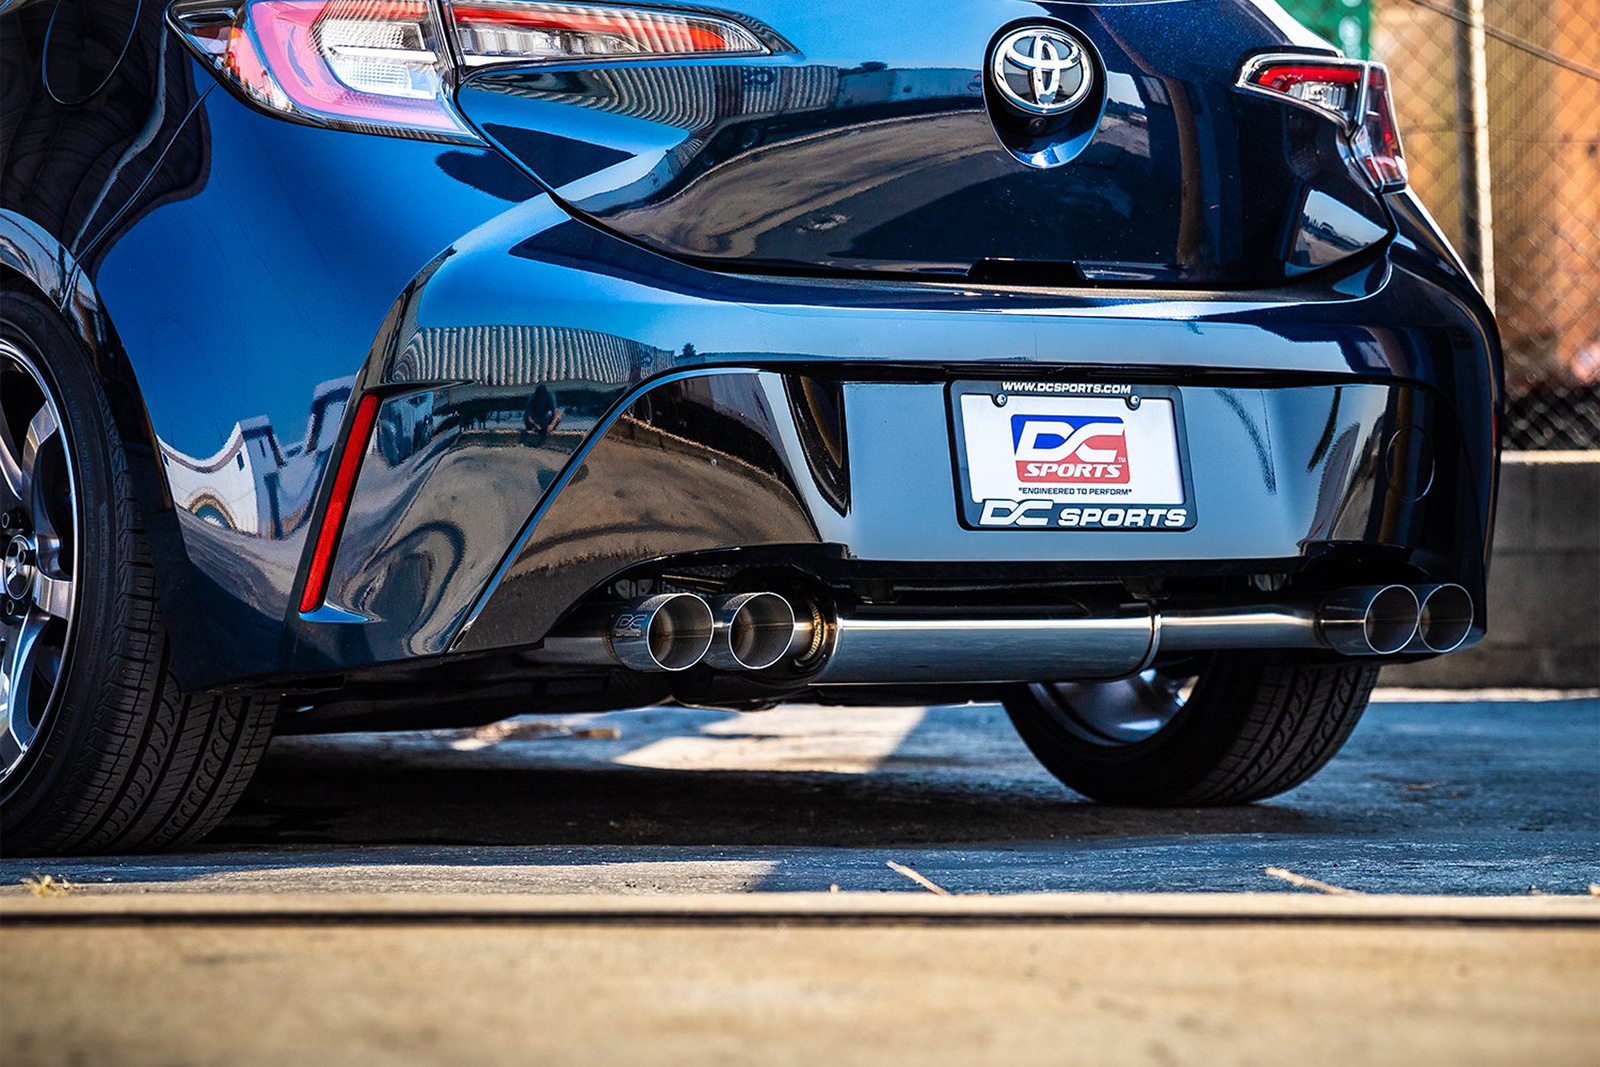 dc sports stainless steel exhaust